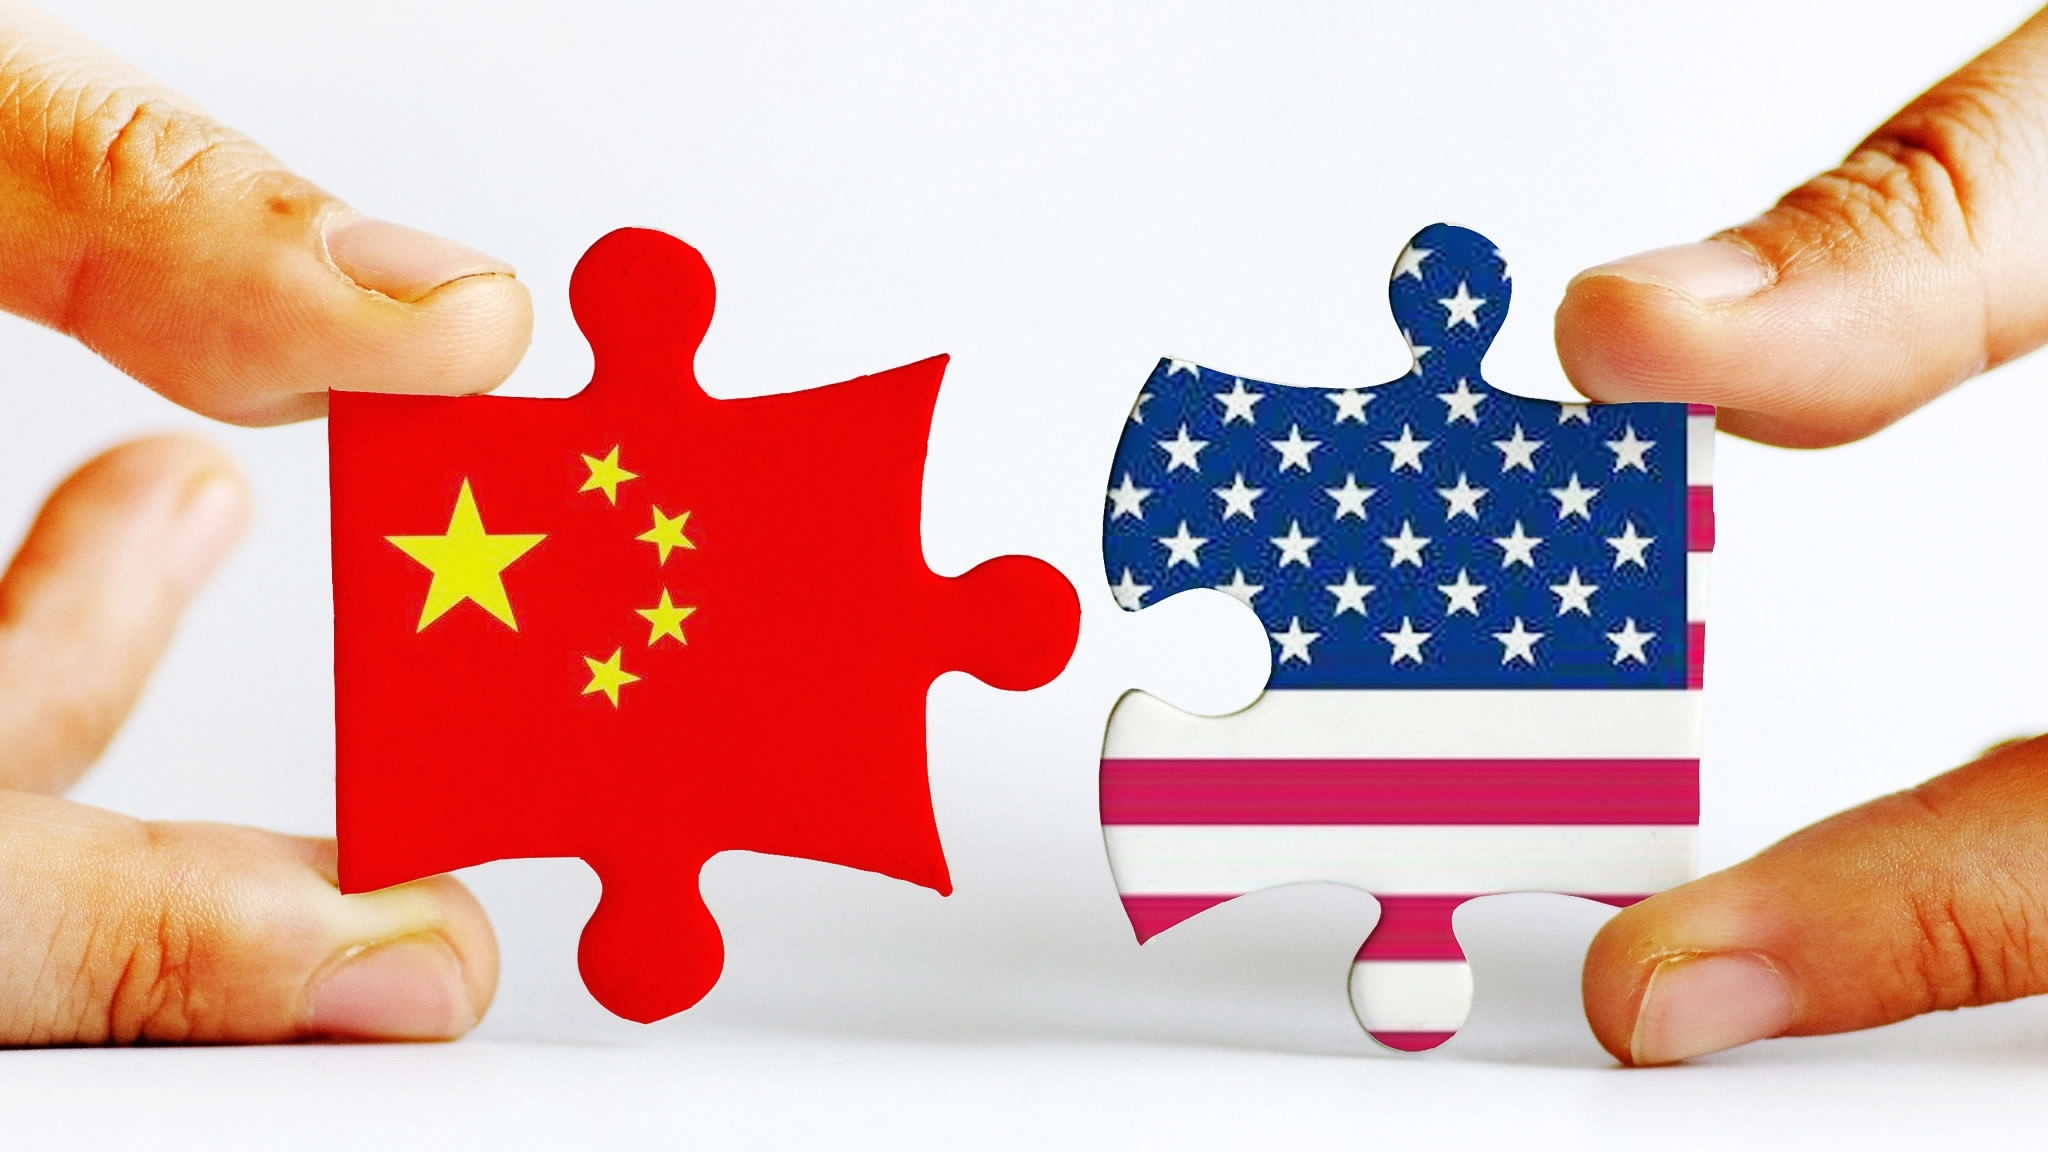 Reset China-US relations through dialogue, respect despite differences